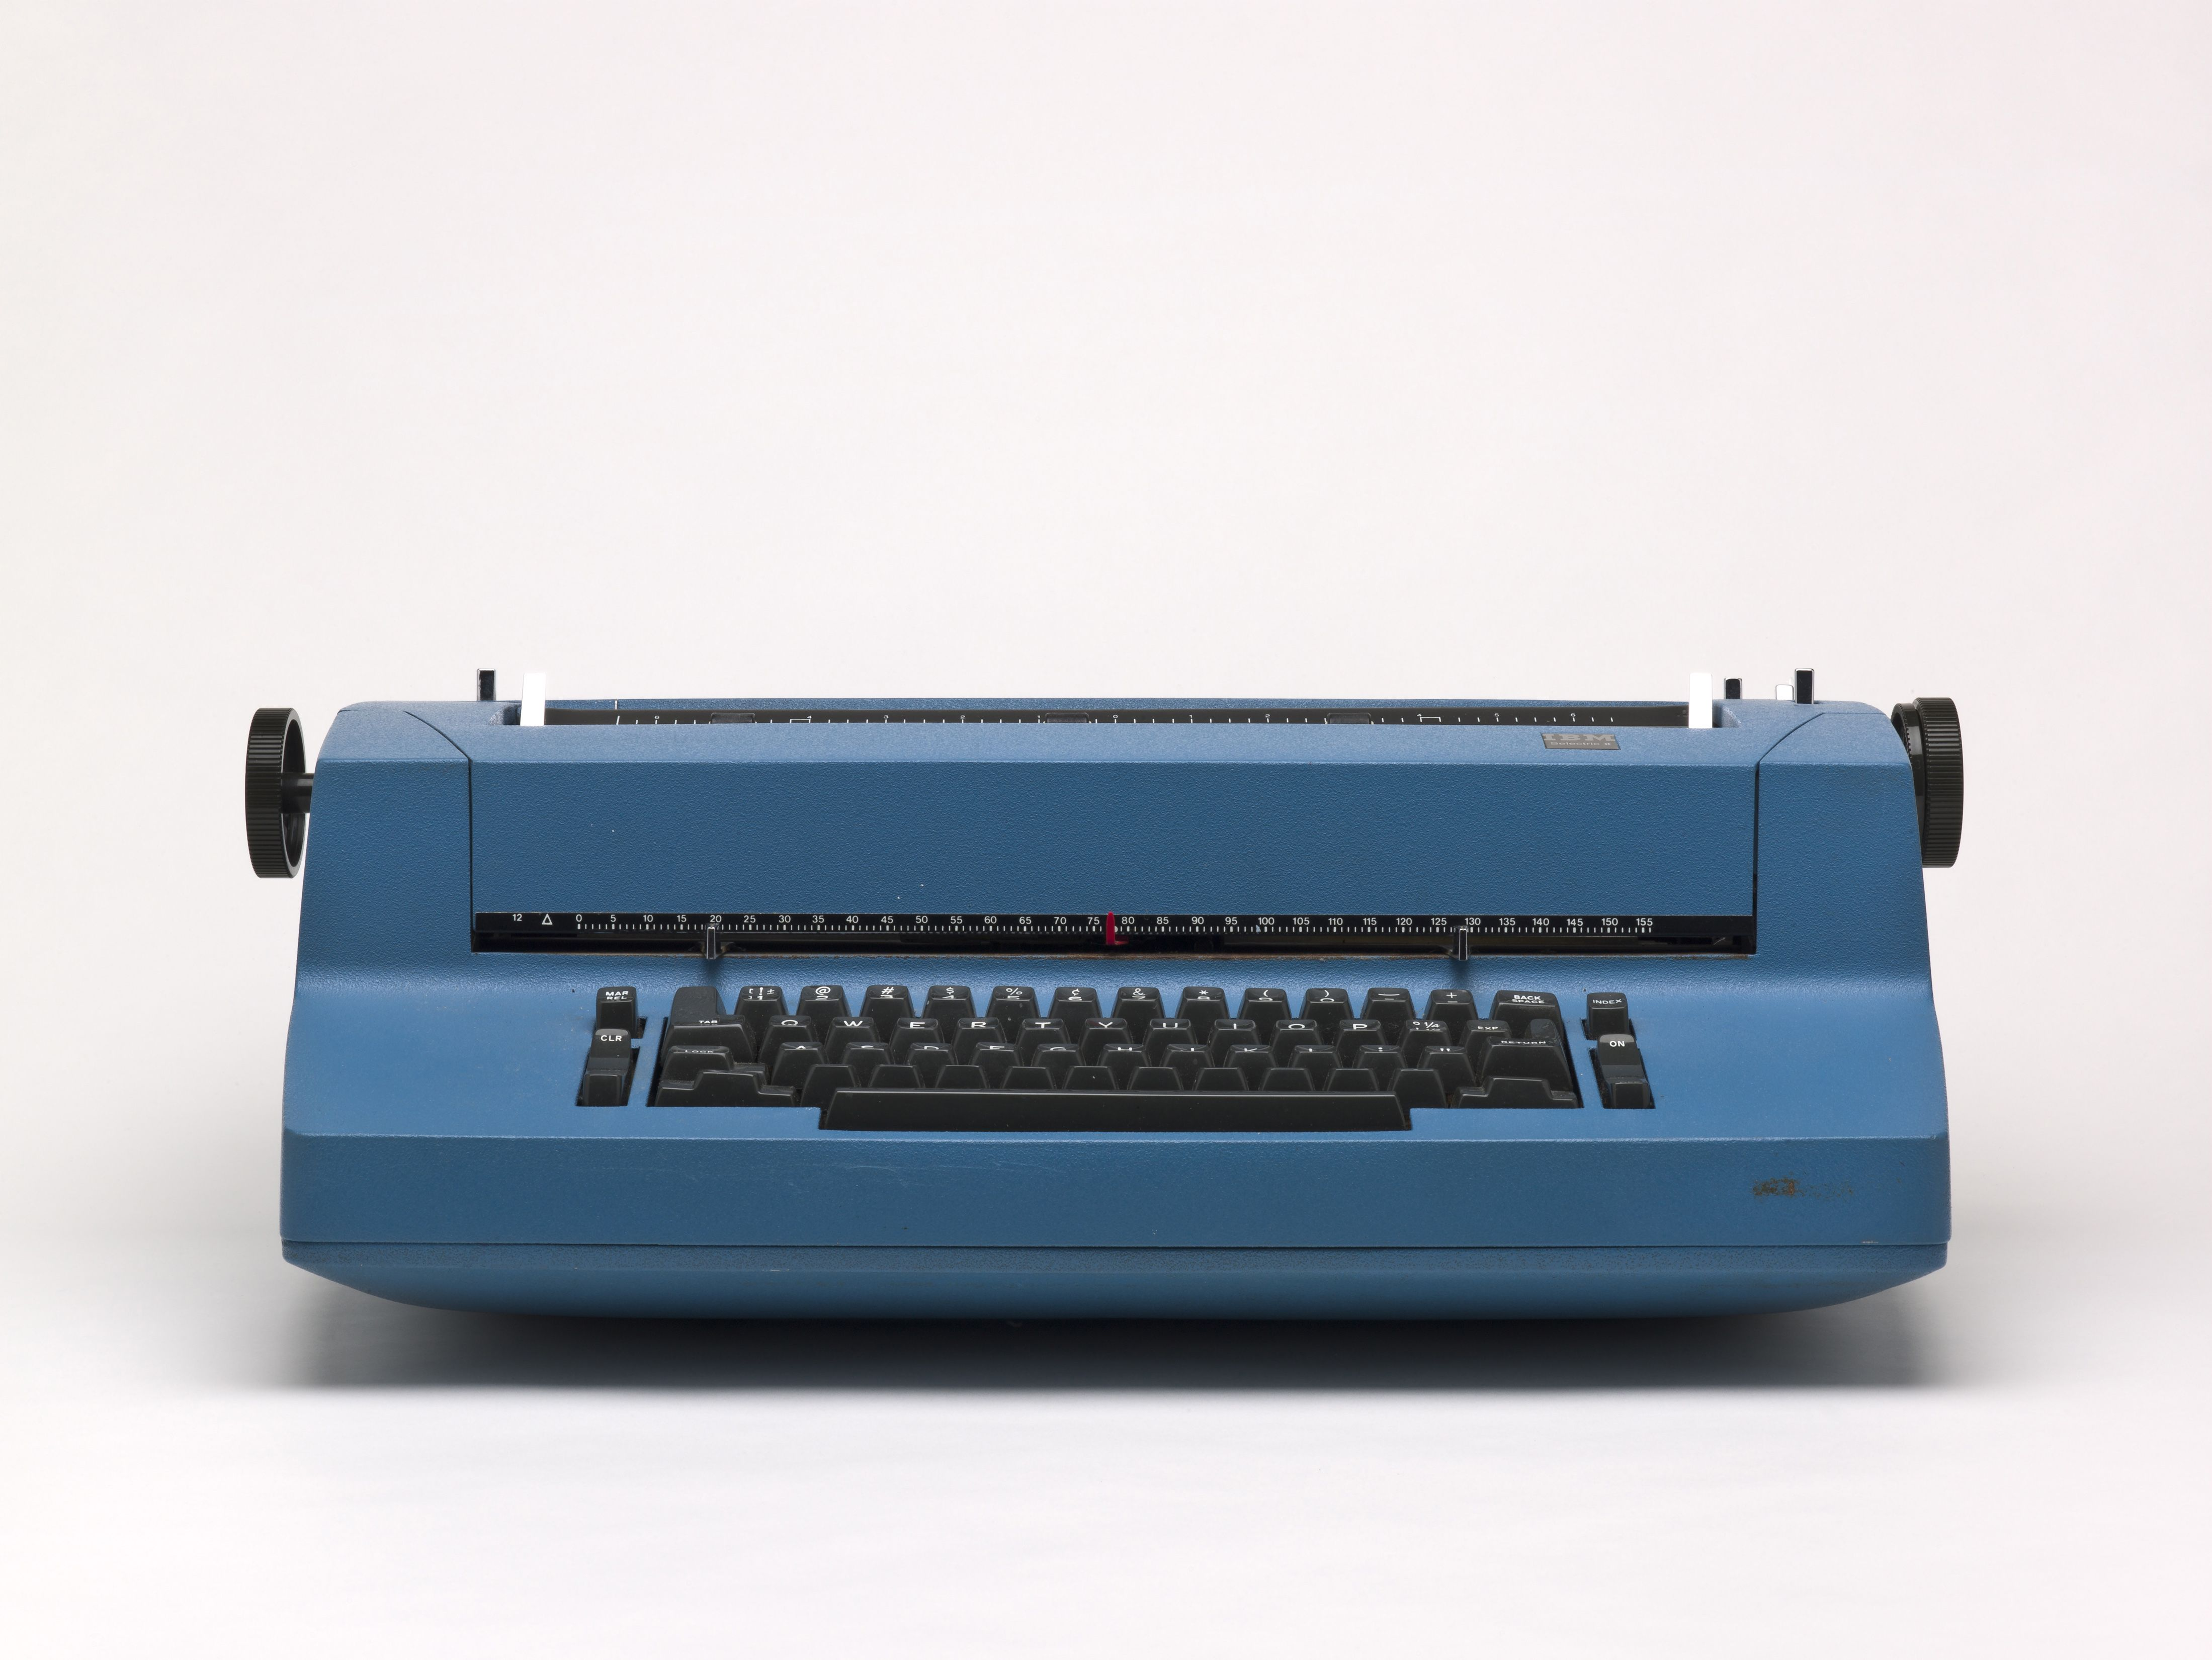 How the KGB Bugged American Typewriters During the Cold War